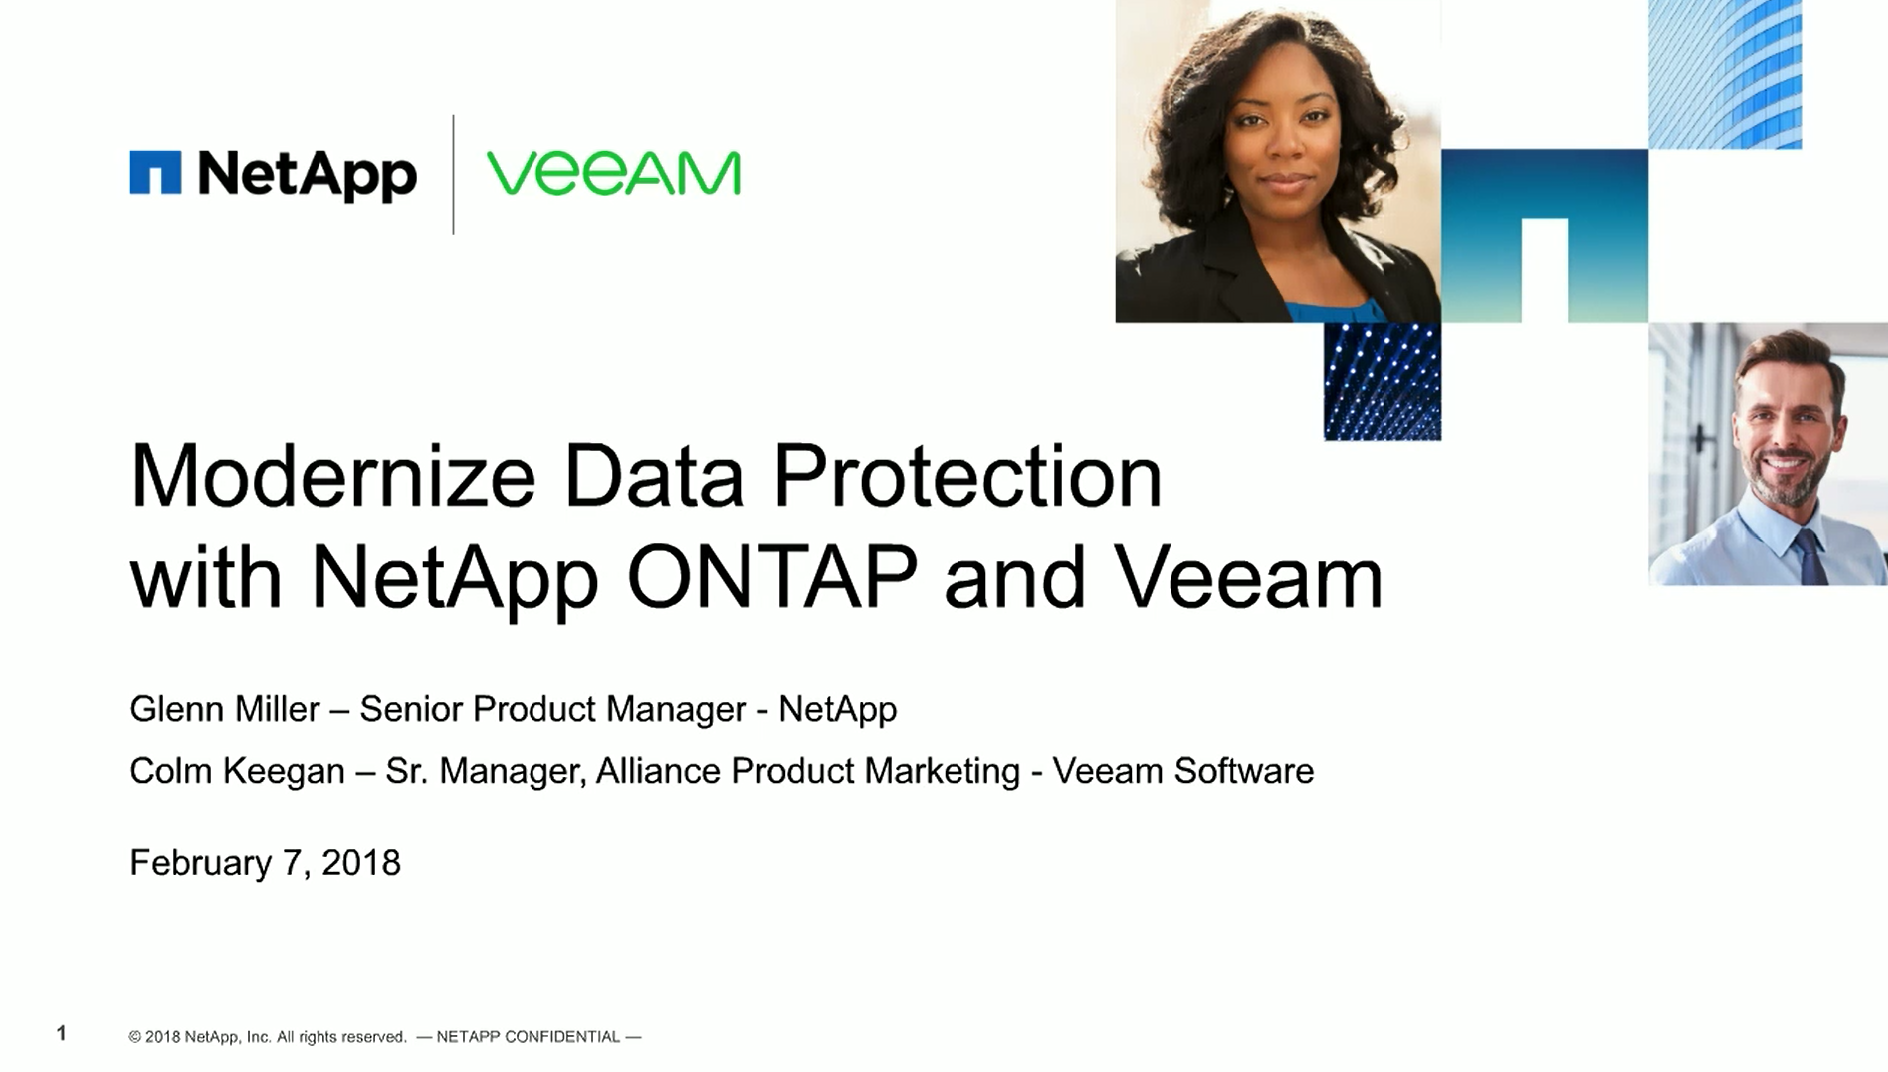 Modernize Data Protection with NetApp ONTAP and Veeam